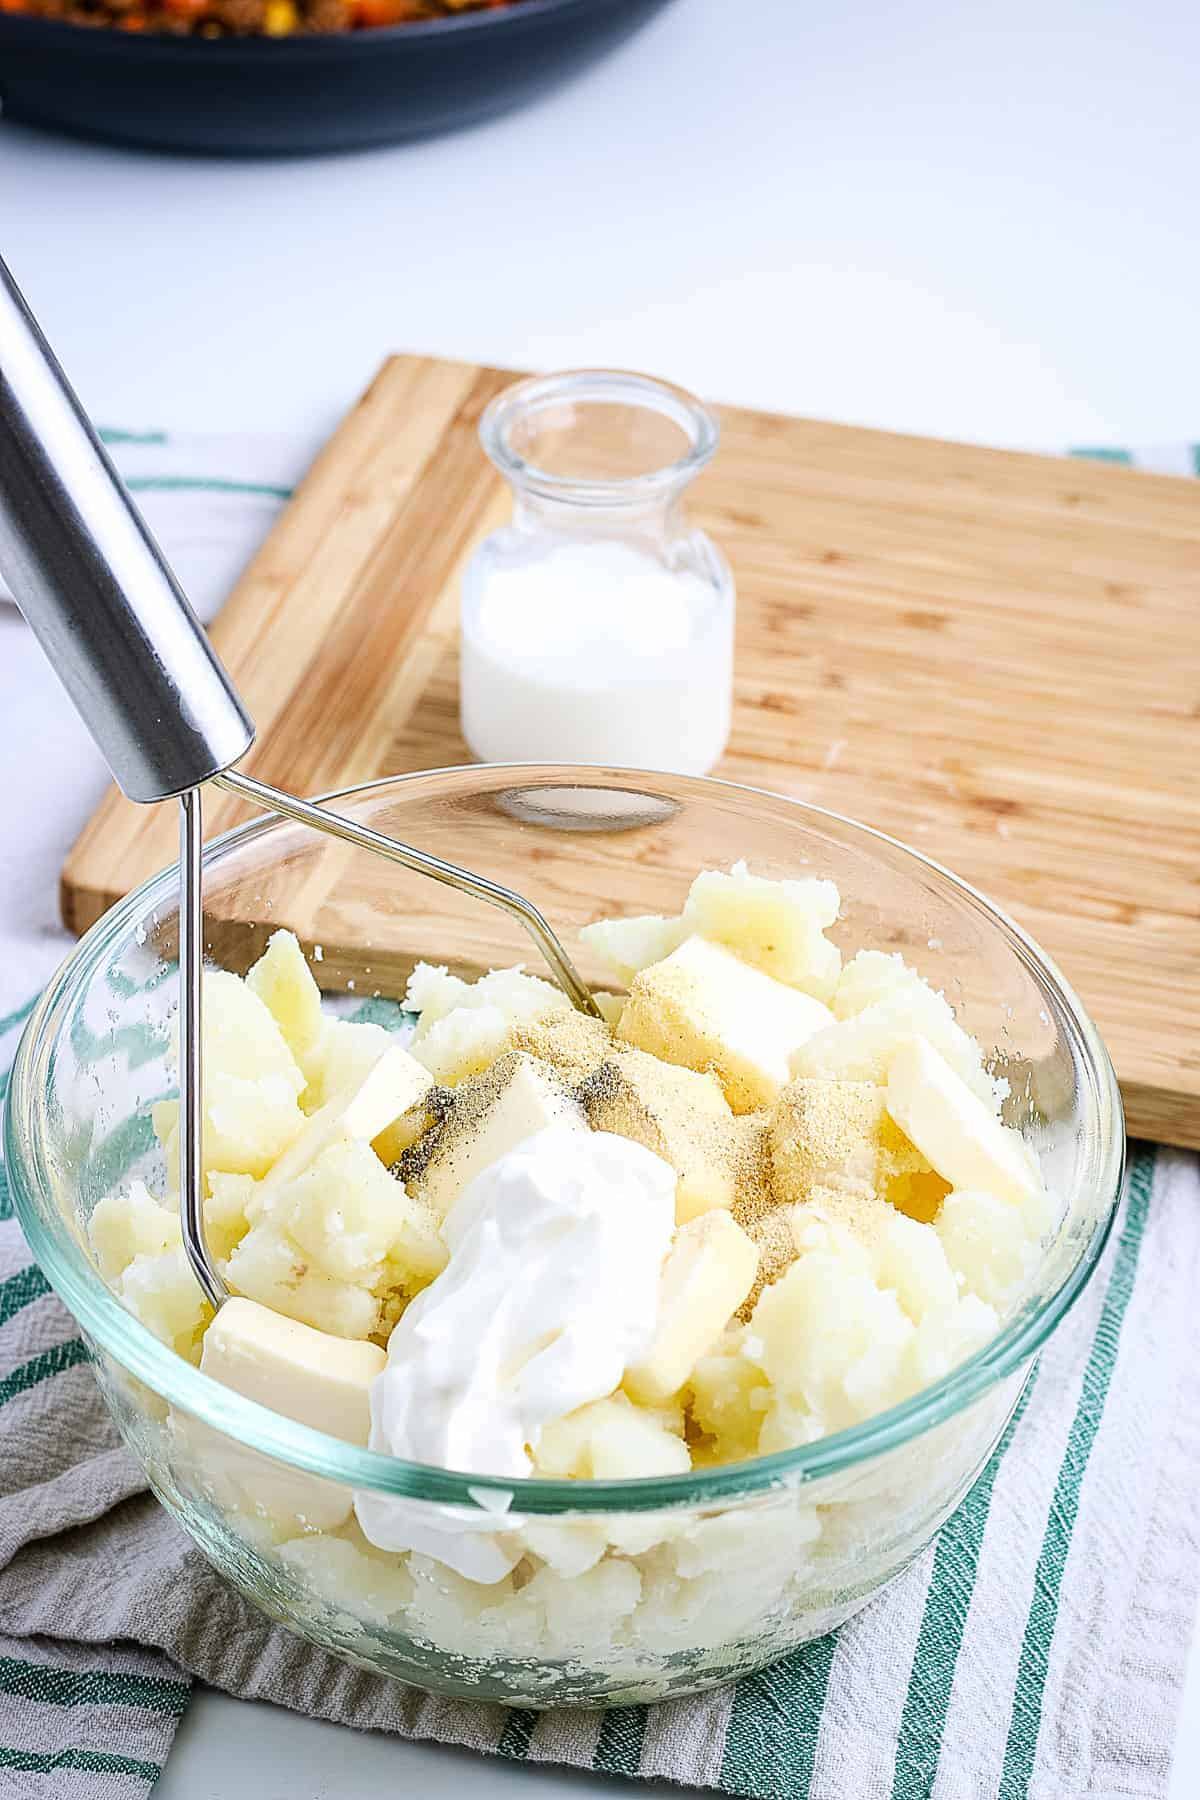 A glass bowl with ingredients to make mashed potatoes